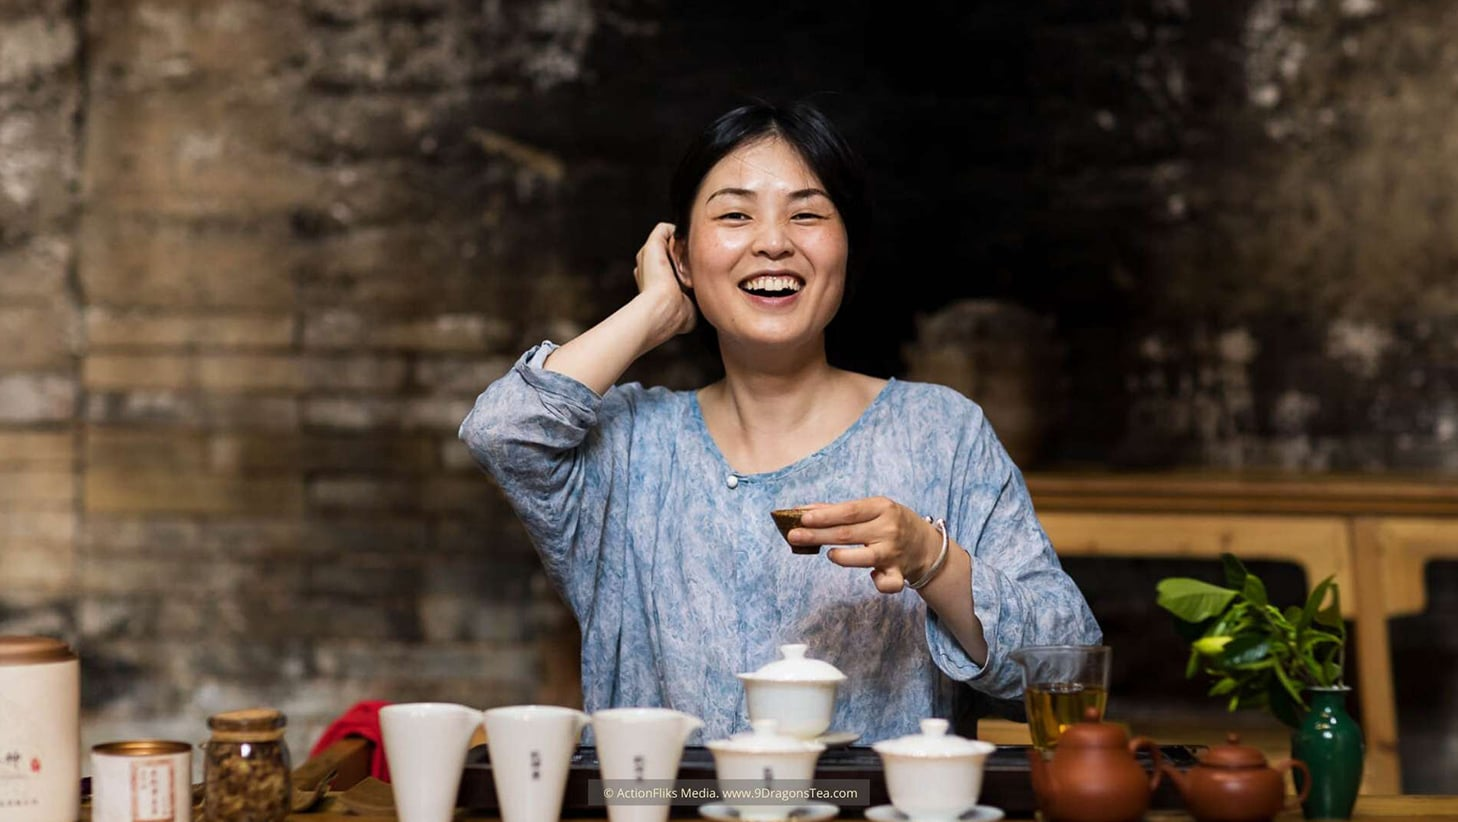 Wuyishan culture Chinese tea rituals tea tasting lady holding a cup smiling happy tea drinking